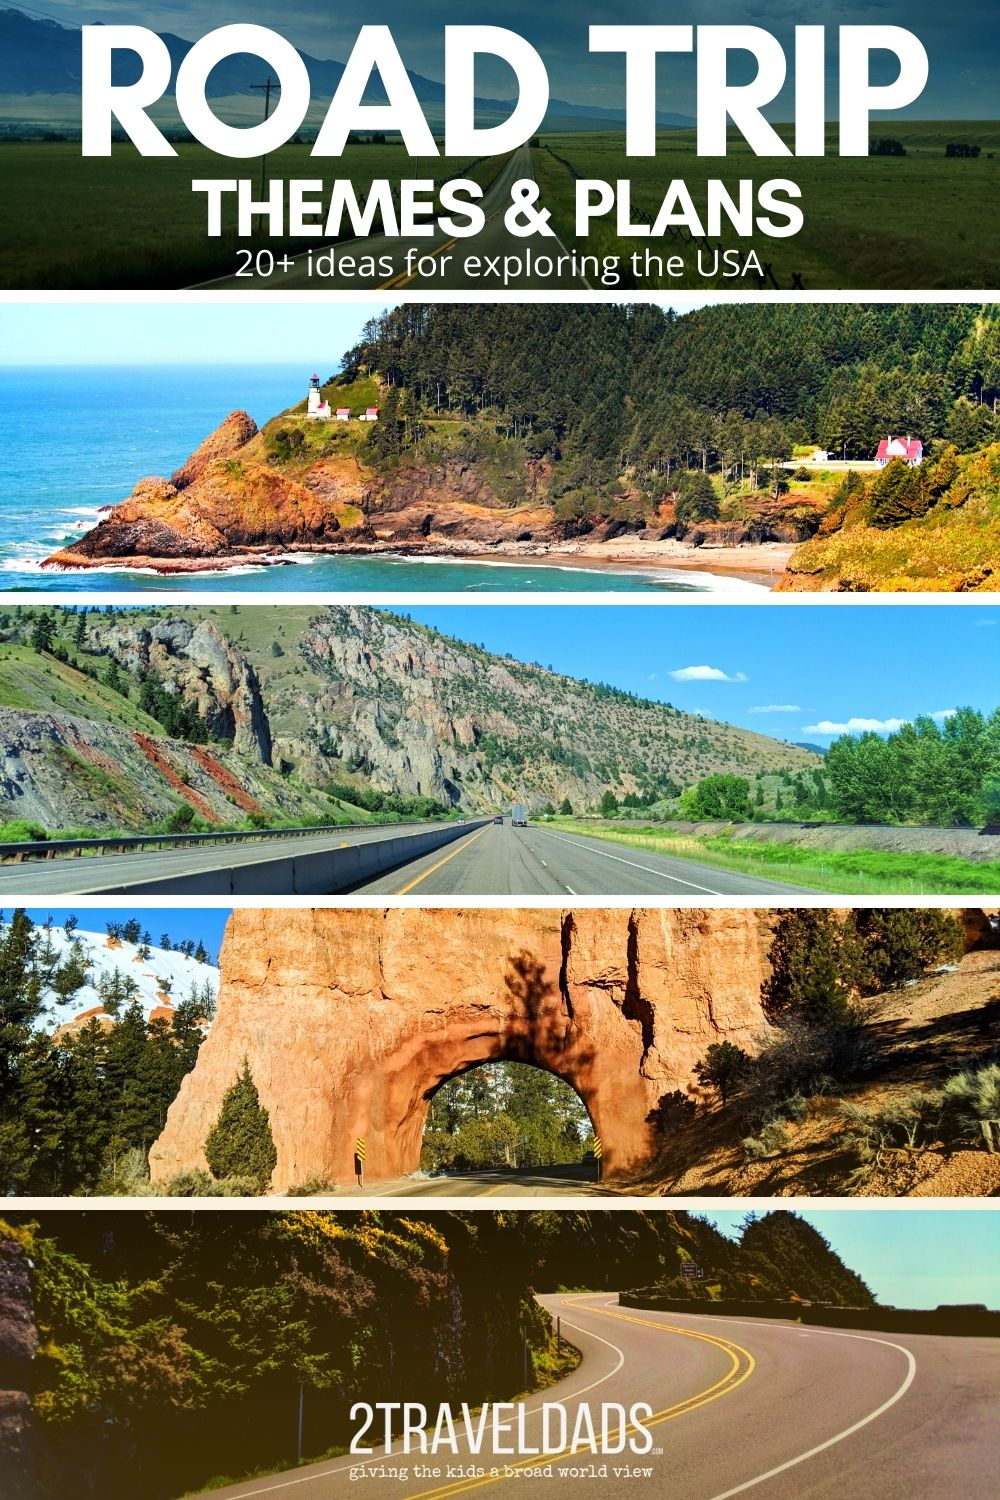 20+ road trip themes that you will never forget. From epic photography journeys to family fun or romantic vacations, these road trip themes and plans are sure to inspire new and amazing adventures.